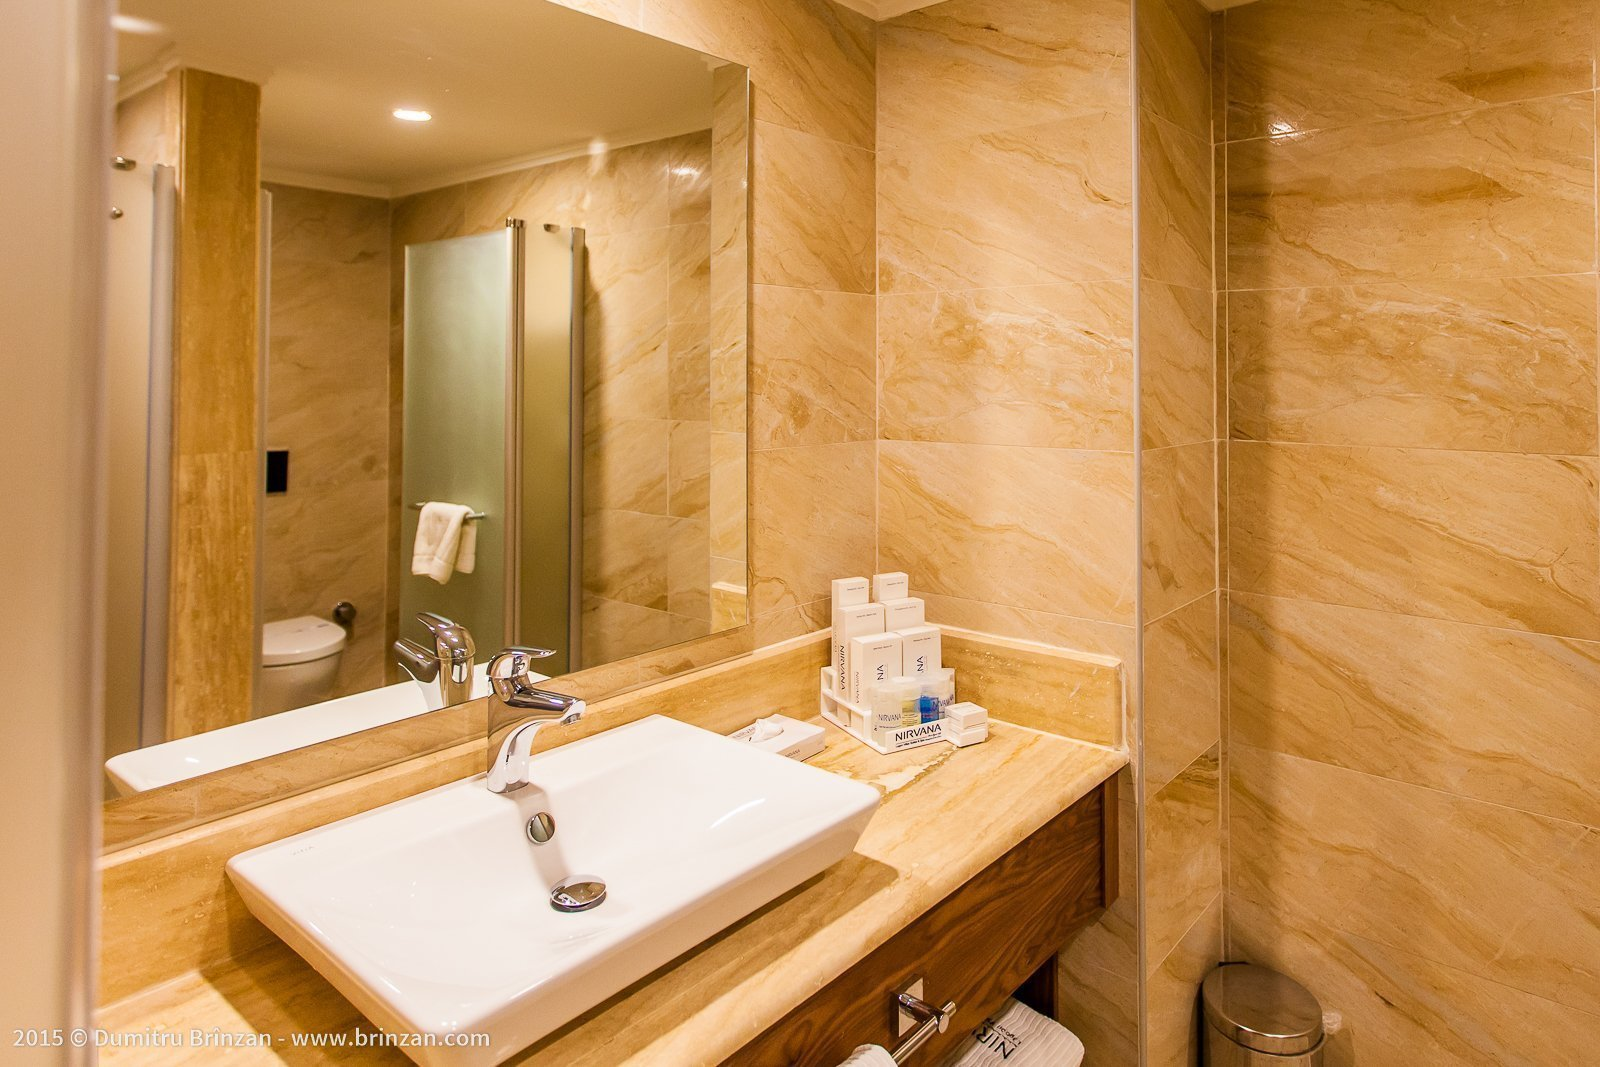 Nirvana Lagoon Villas Suites & Spa - Standard Bathroom